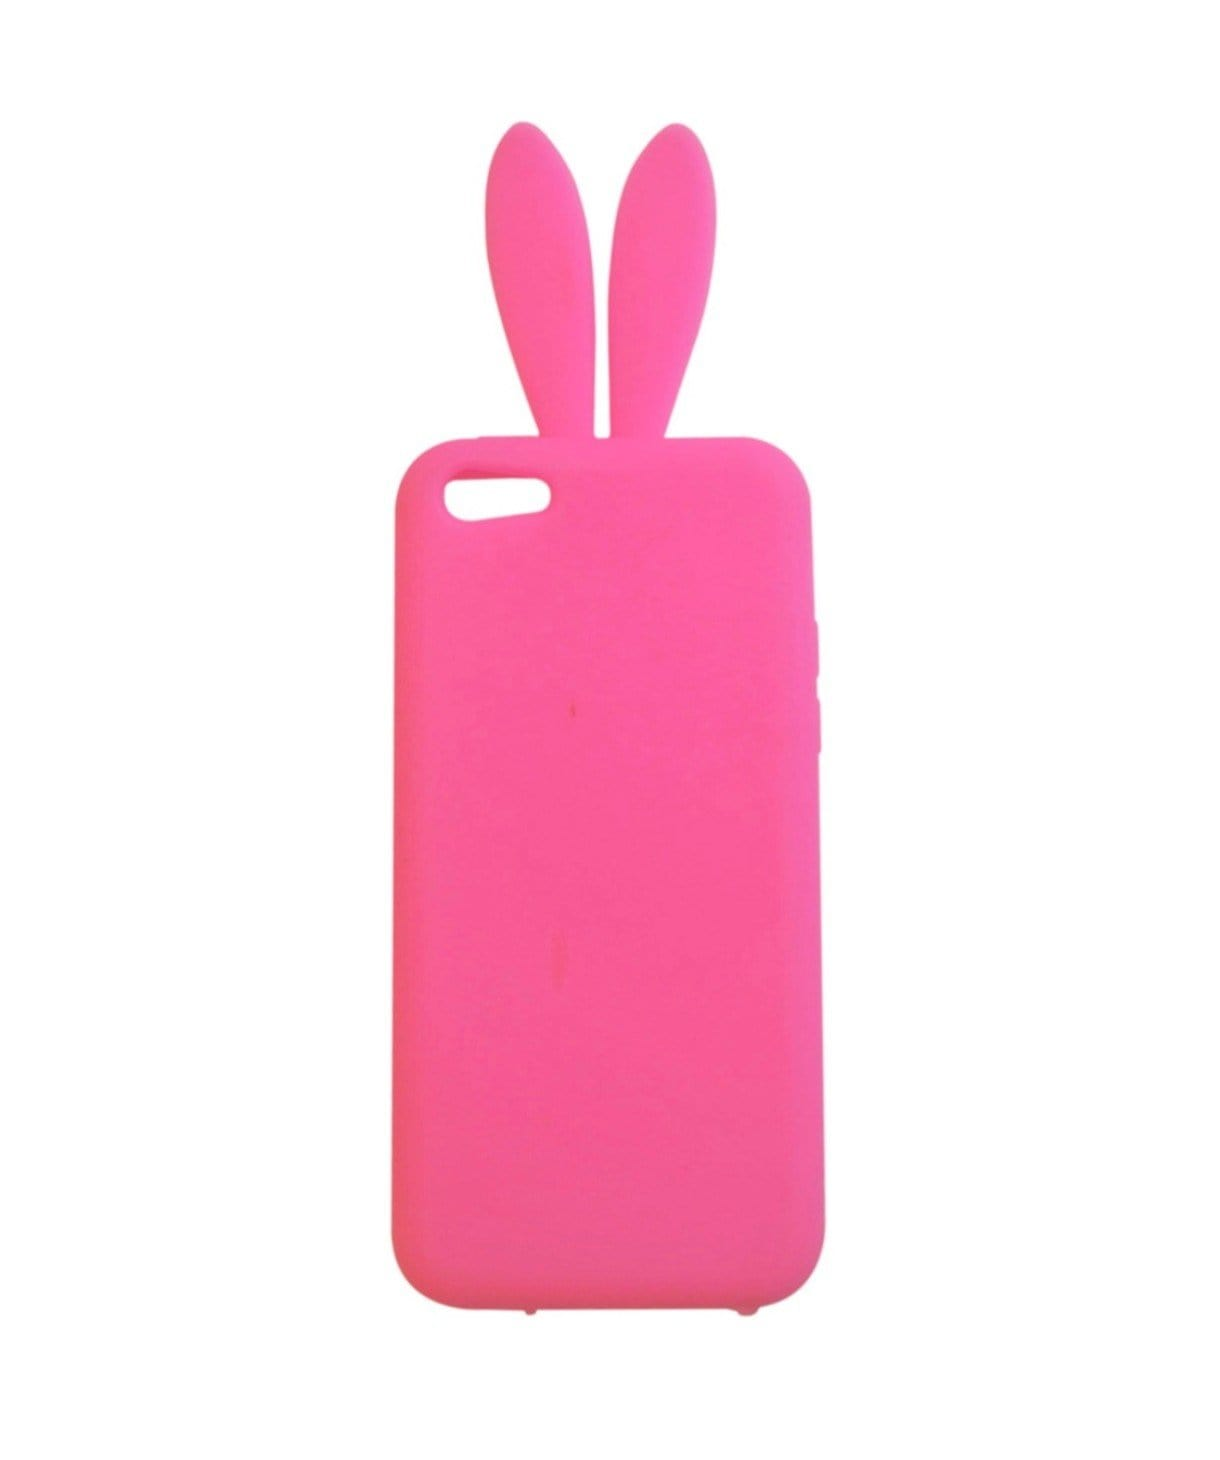 Bunny Up IPhone Cover - Uptownie